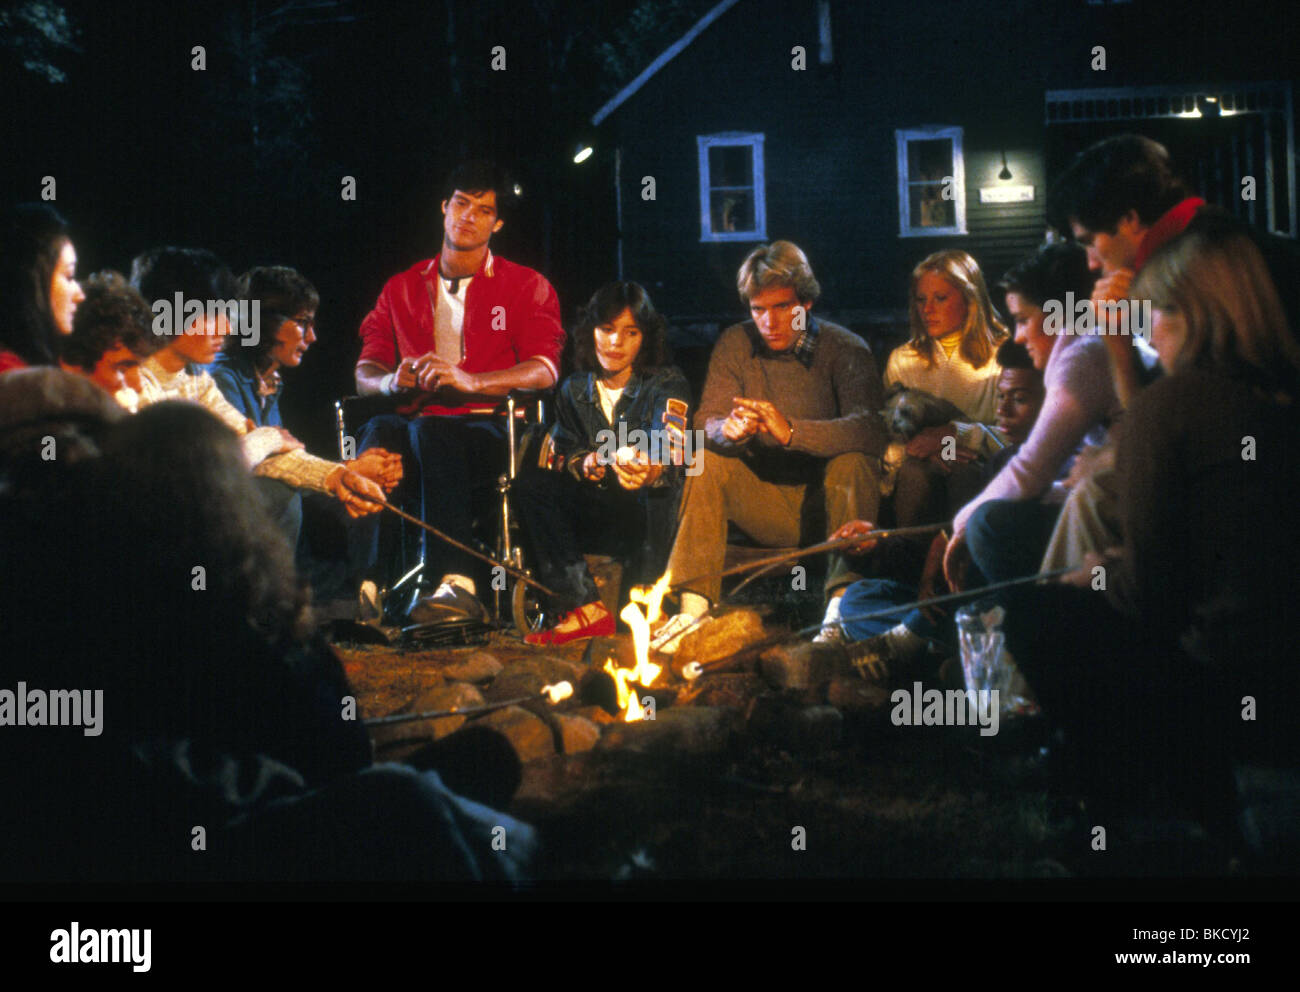 friday the 13th movie stock photos amp friday the 13th movie